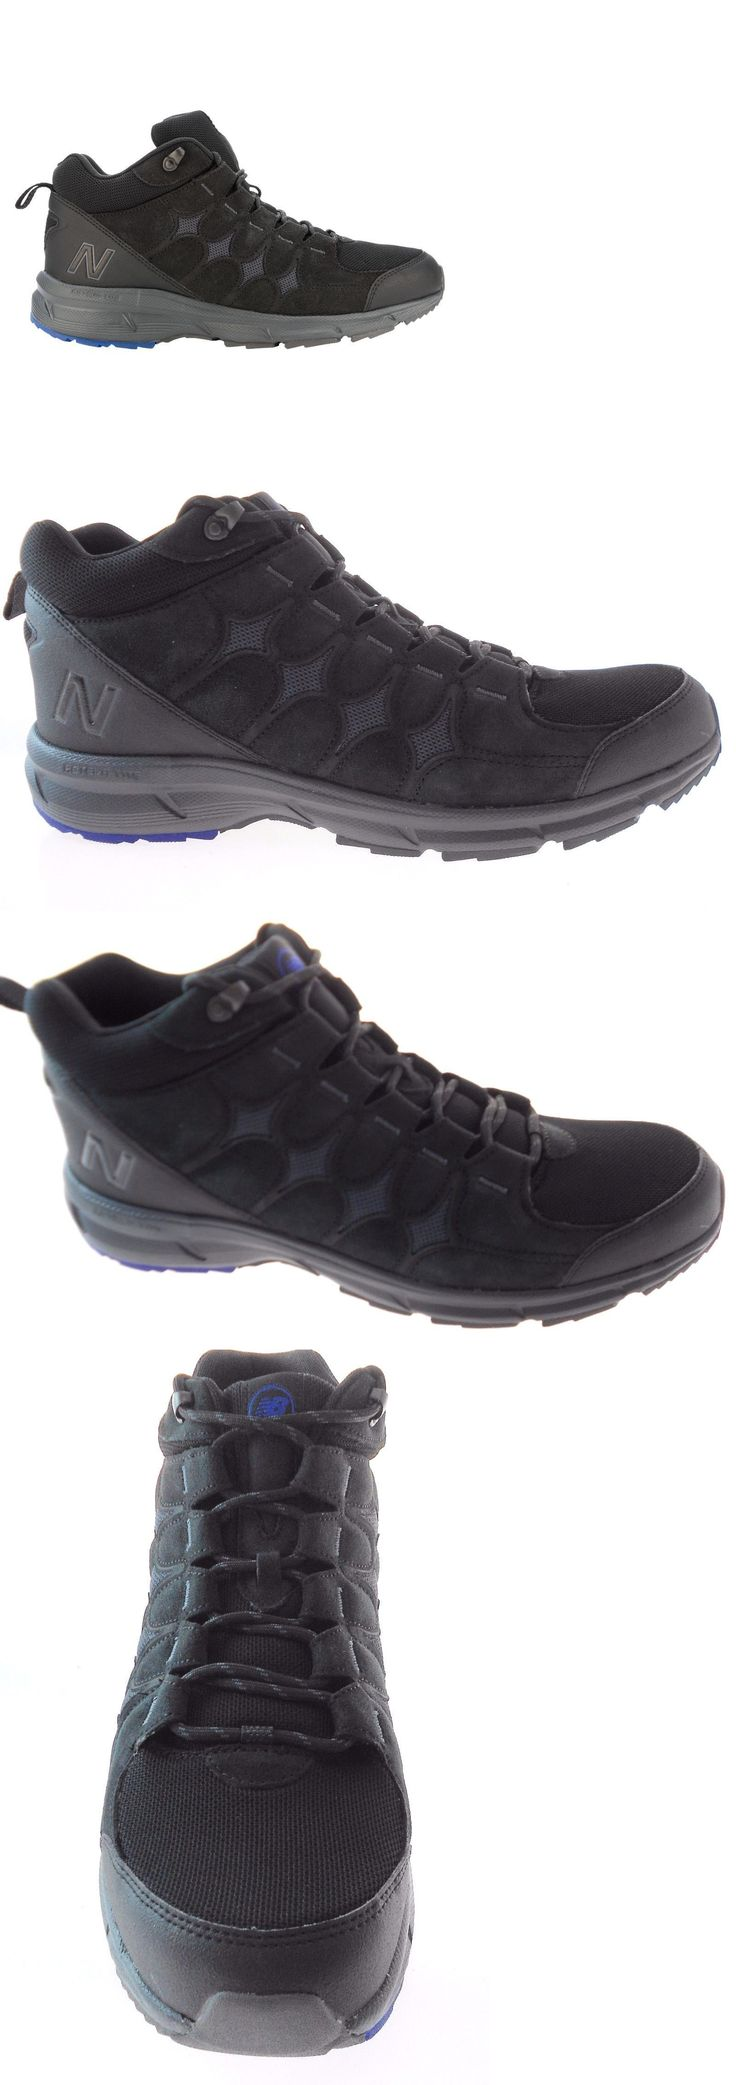 Mens 181392: New Balance Mw899bk Men S Black Outdoor Walking Boots Size 9.5 New!! -> BUY IT NOW ONLY: $45 on eBay!